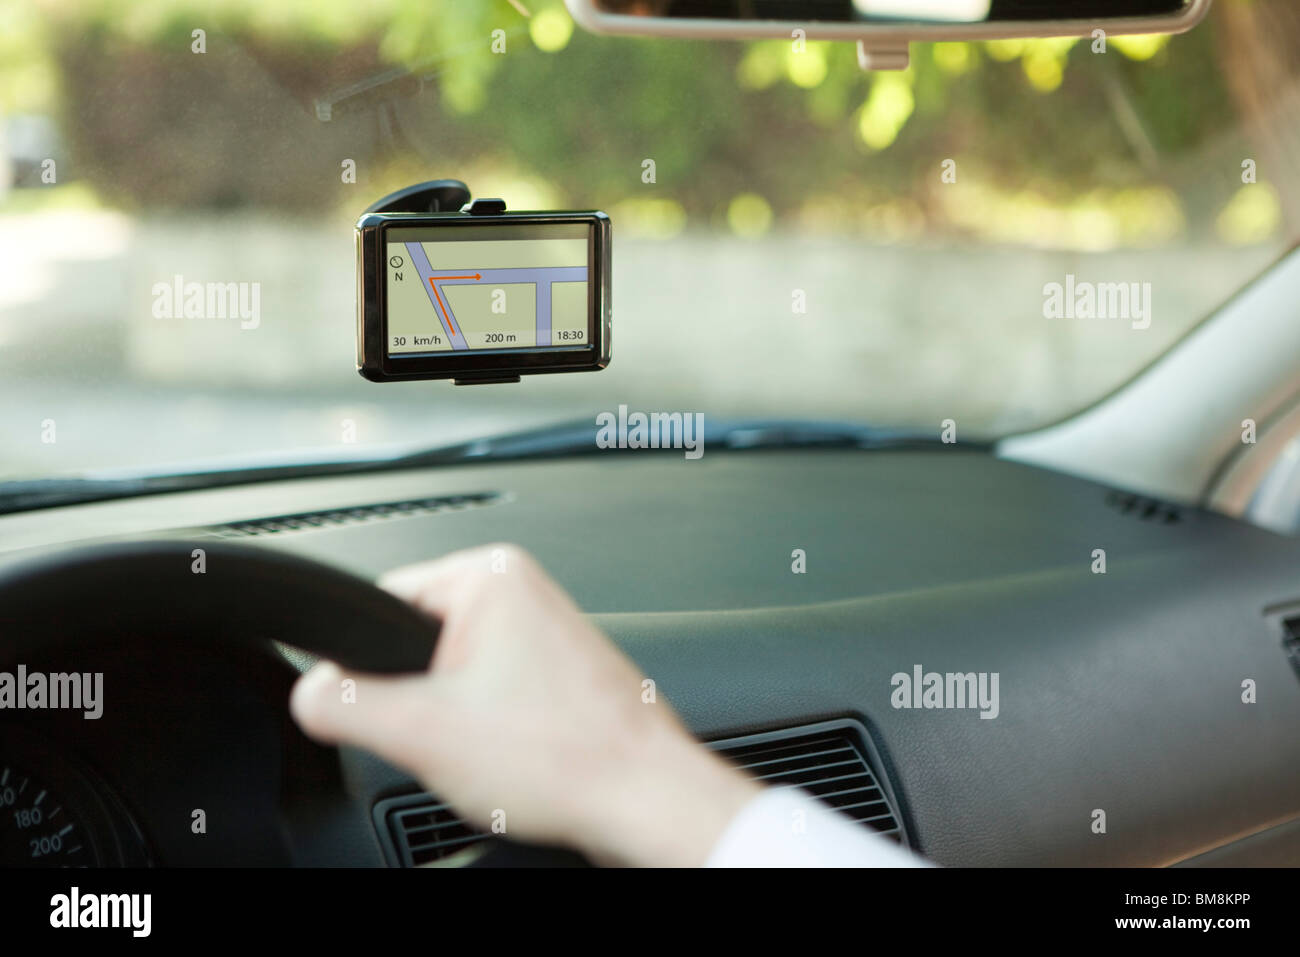 Driver using GPS unit for navigation assistance - Stock Image